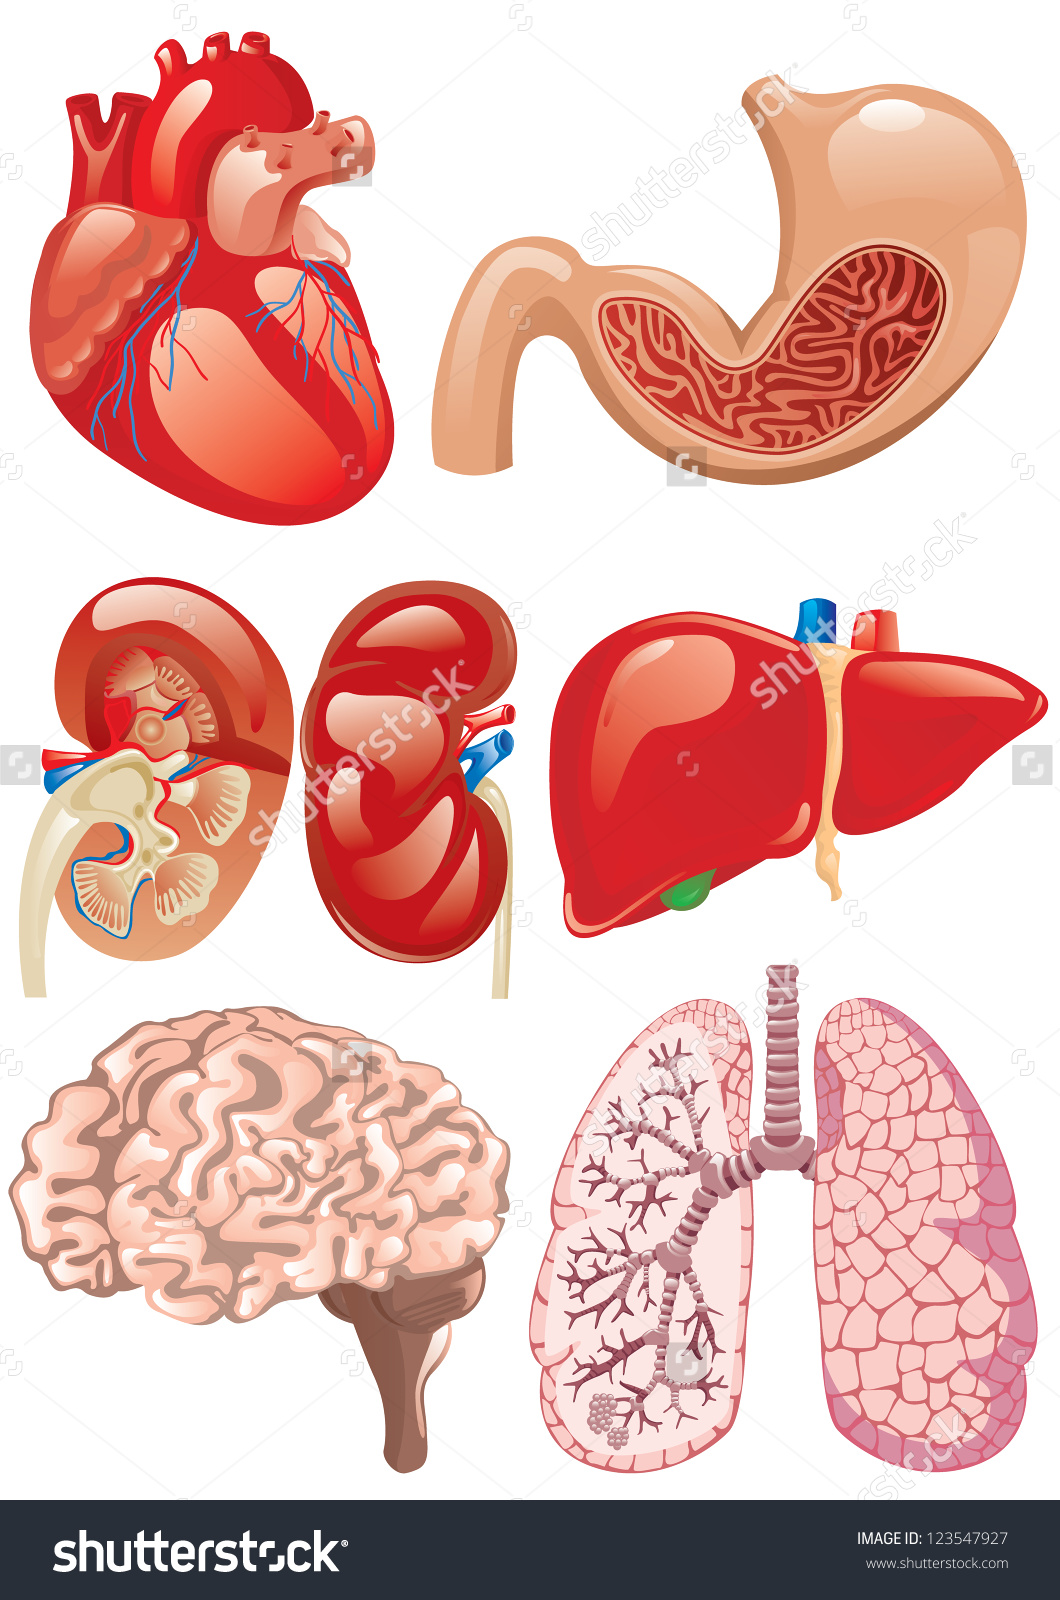 Pictures of internal organs